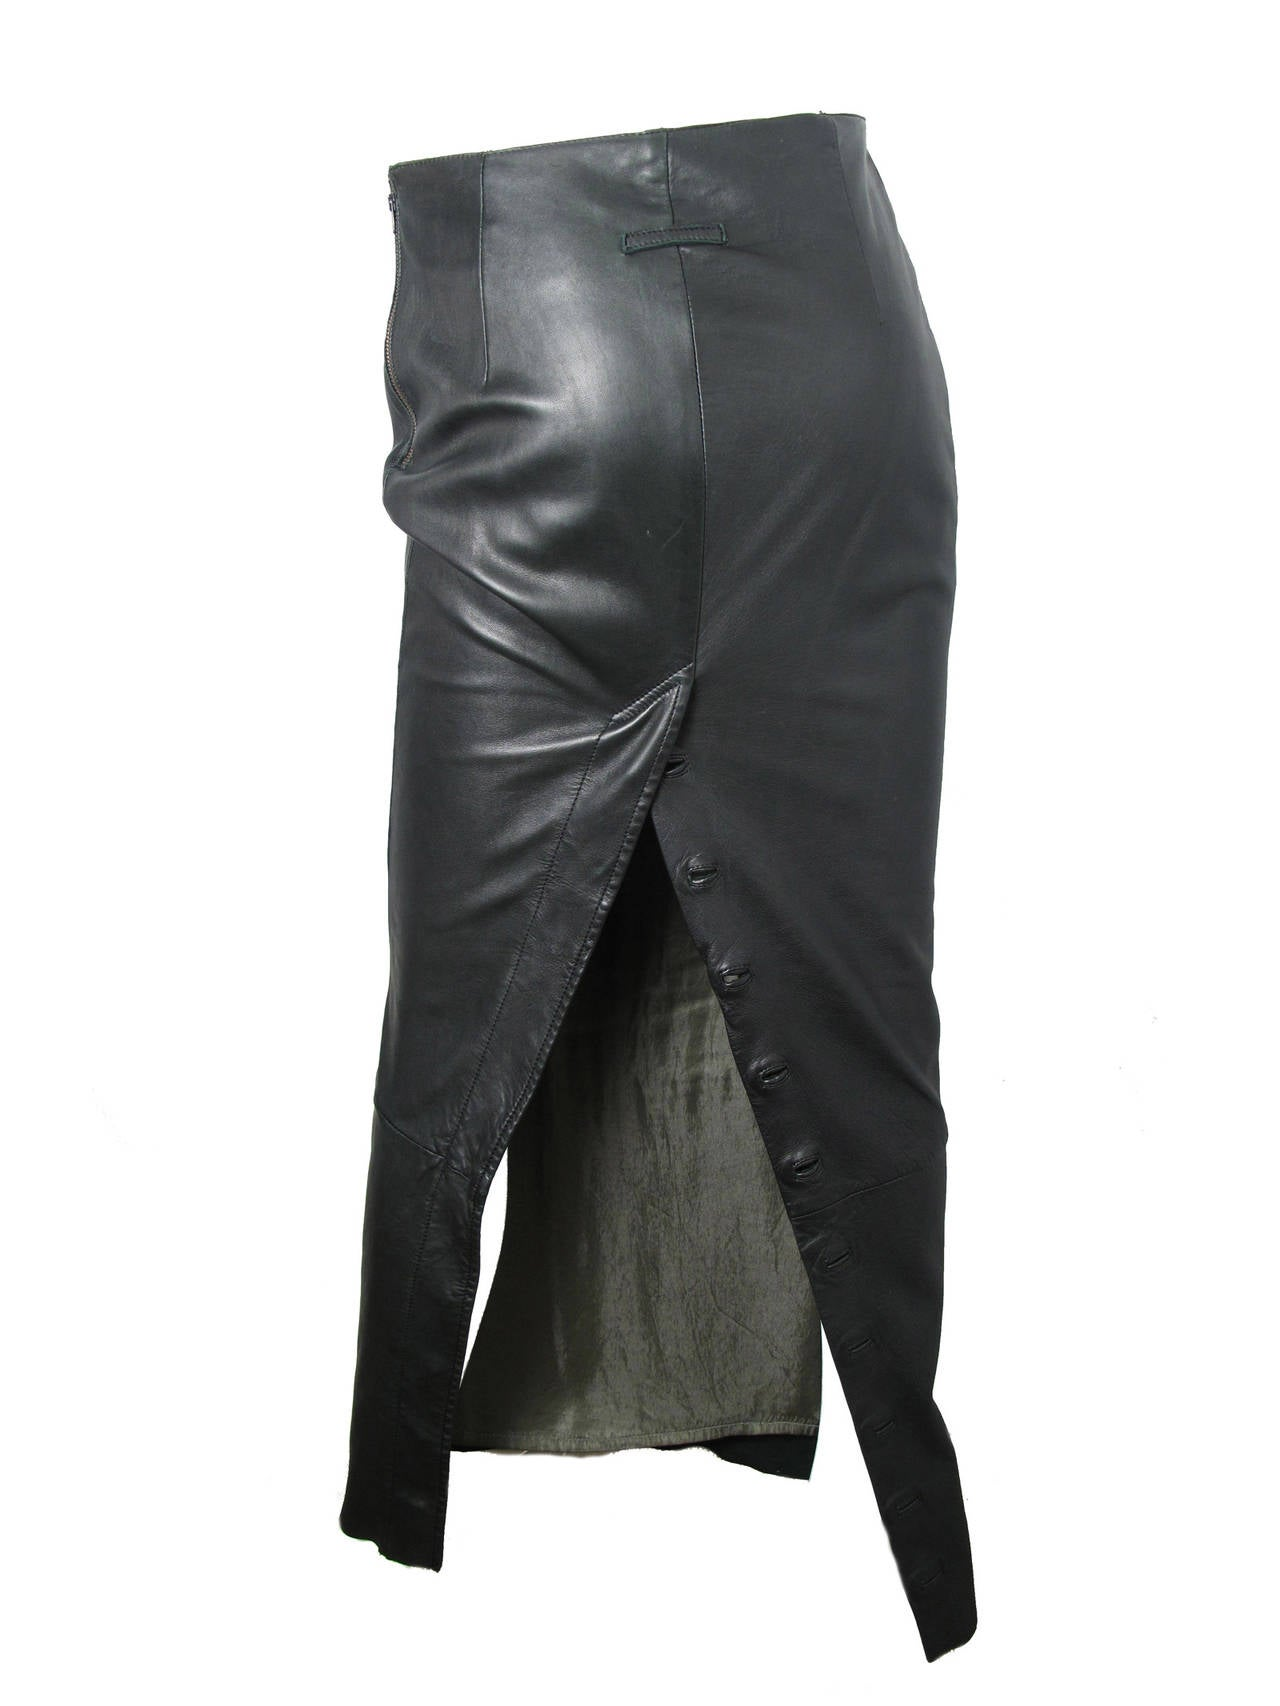 1990s Jean Paul Gaultier Long Ankle Length Leather Skirt at 1stdibs